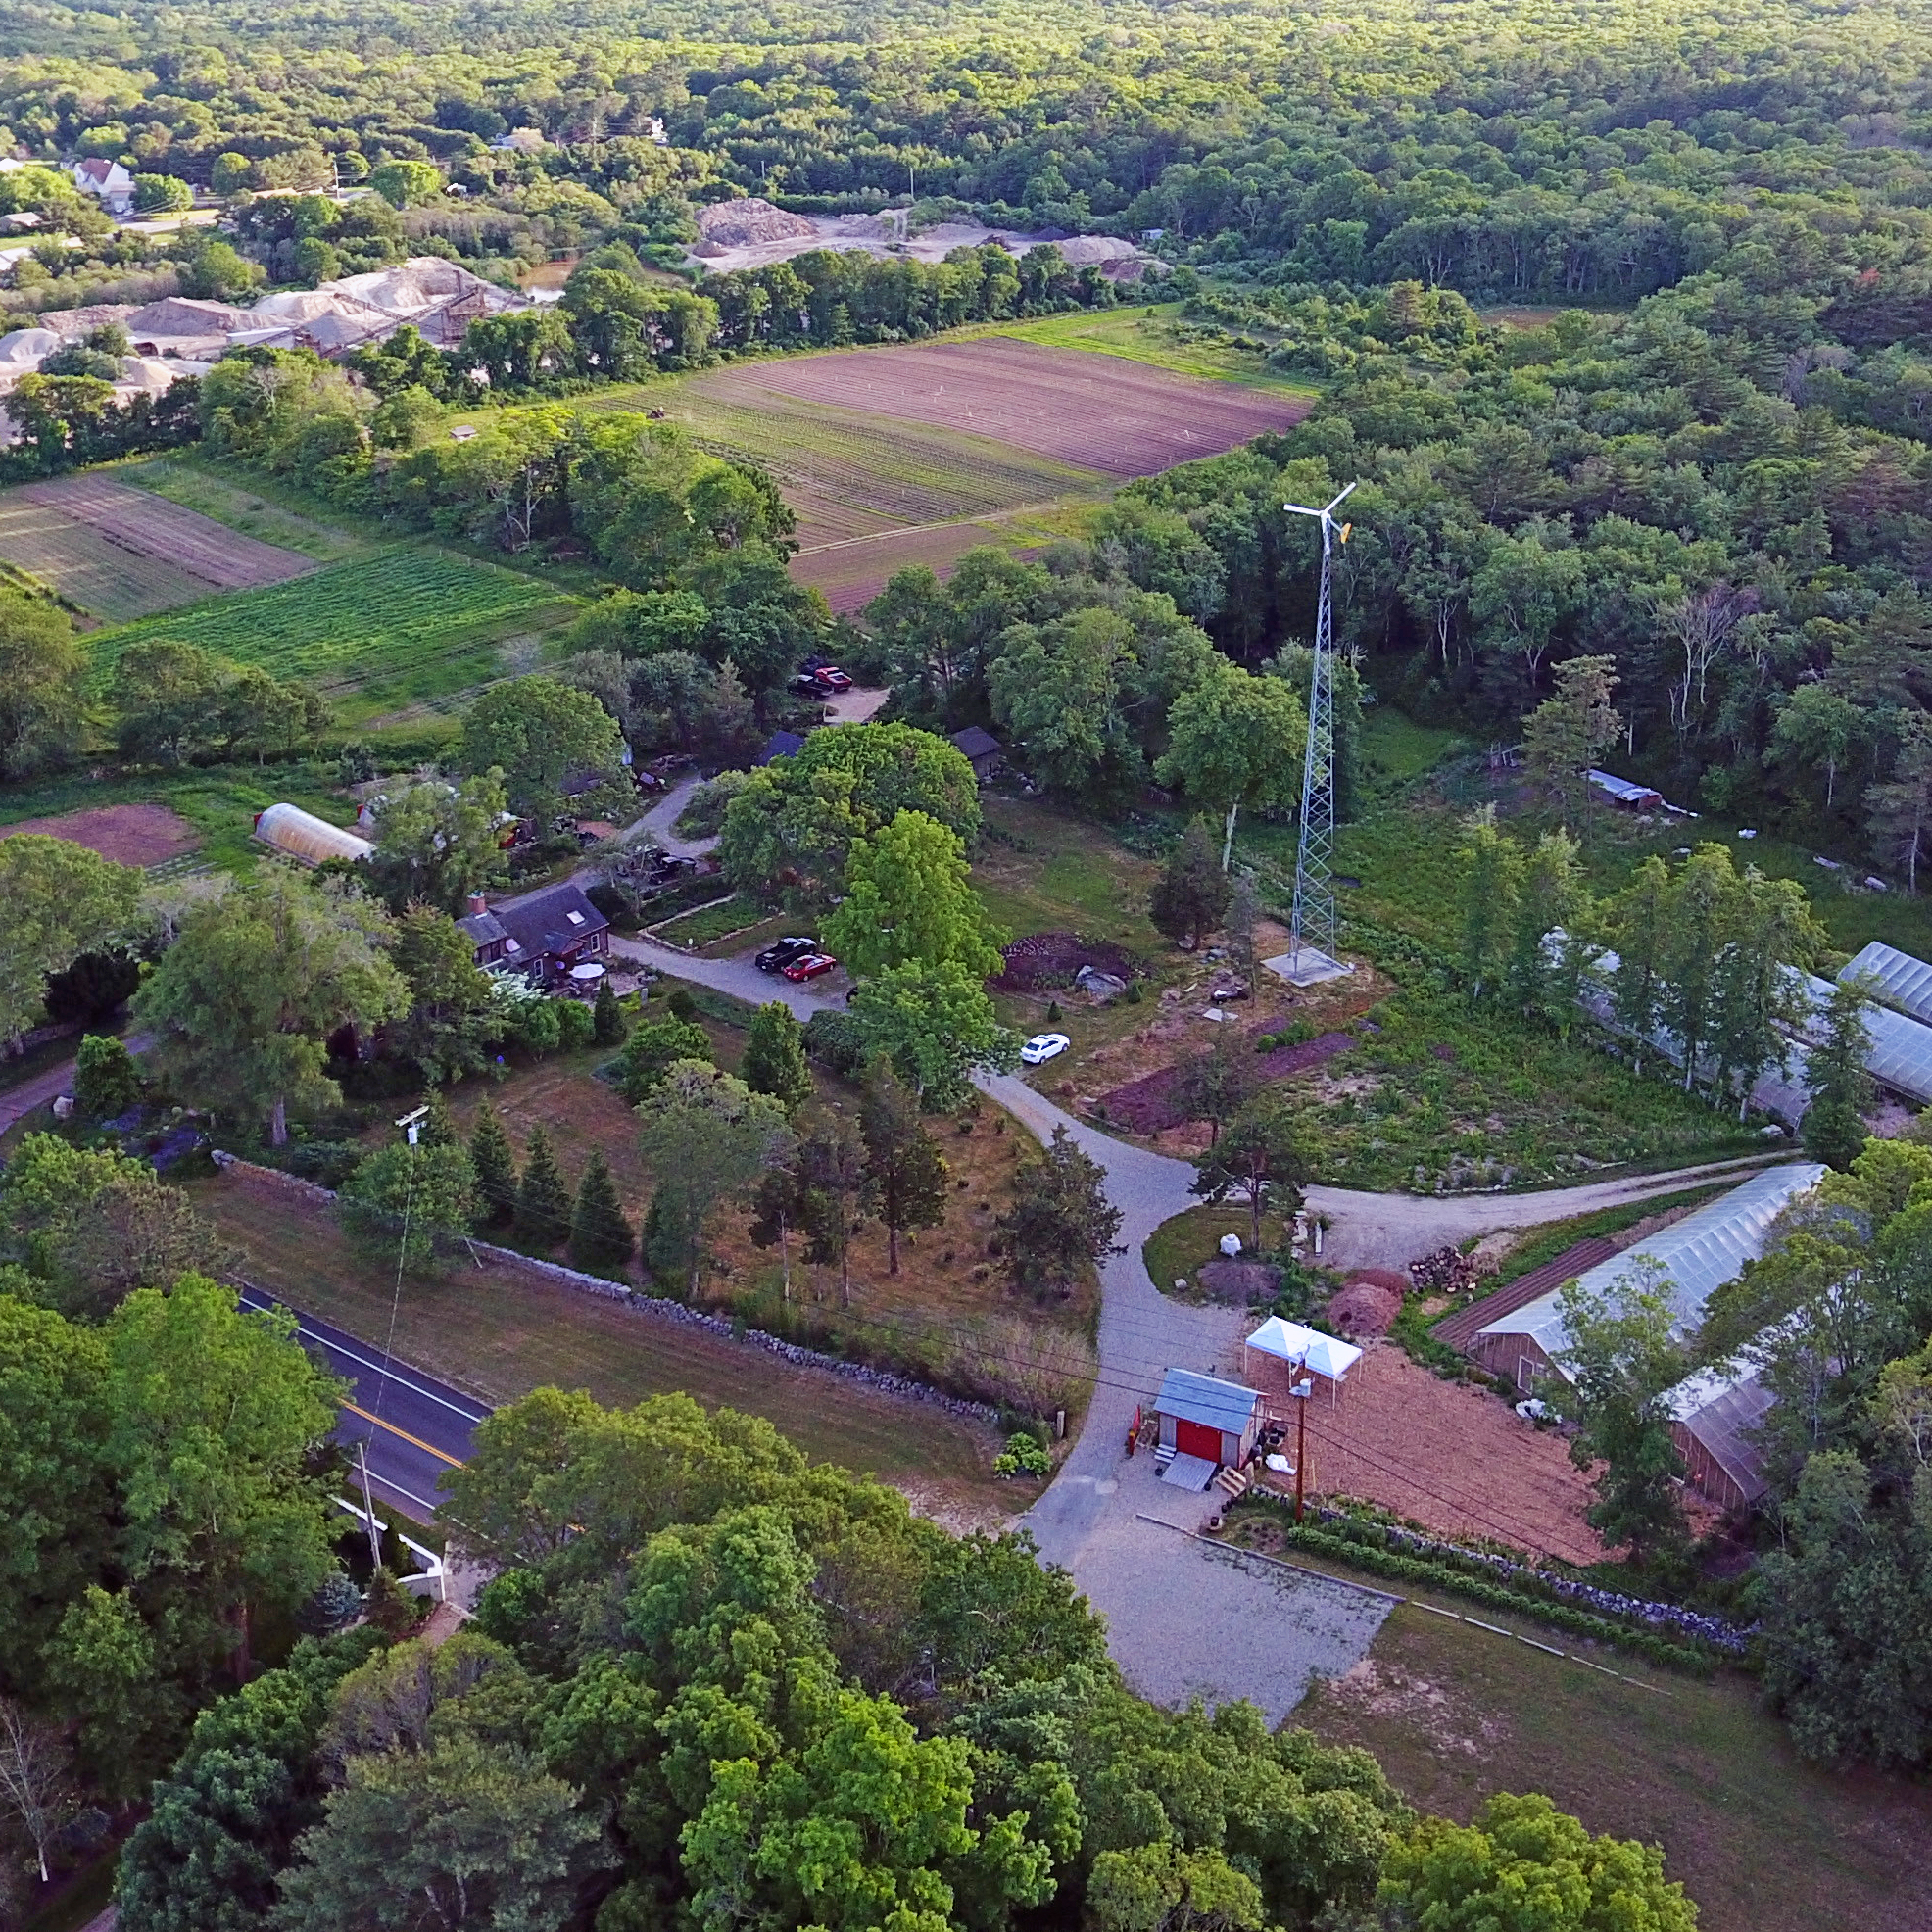 Aerial view of Silverbrook Farm